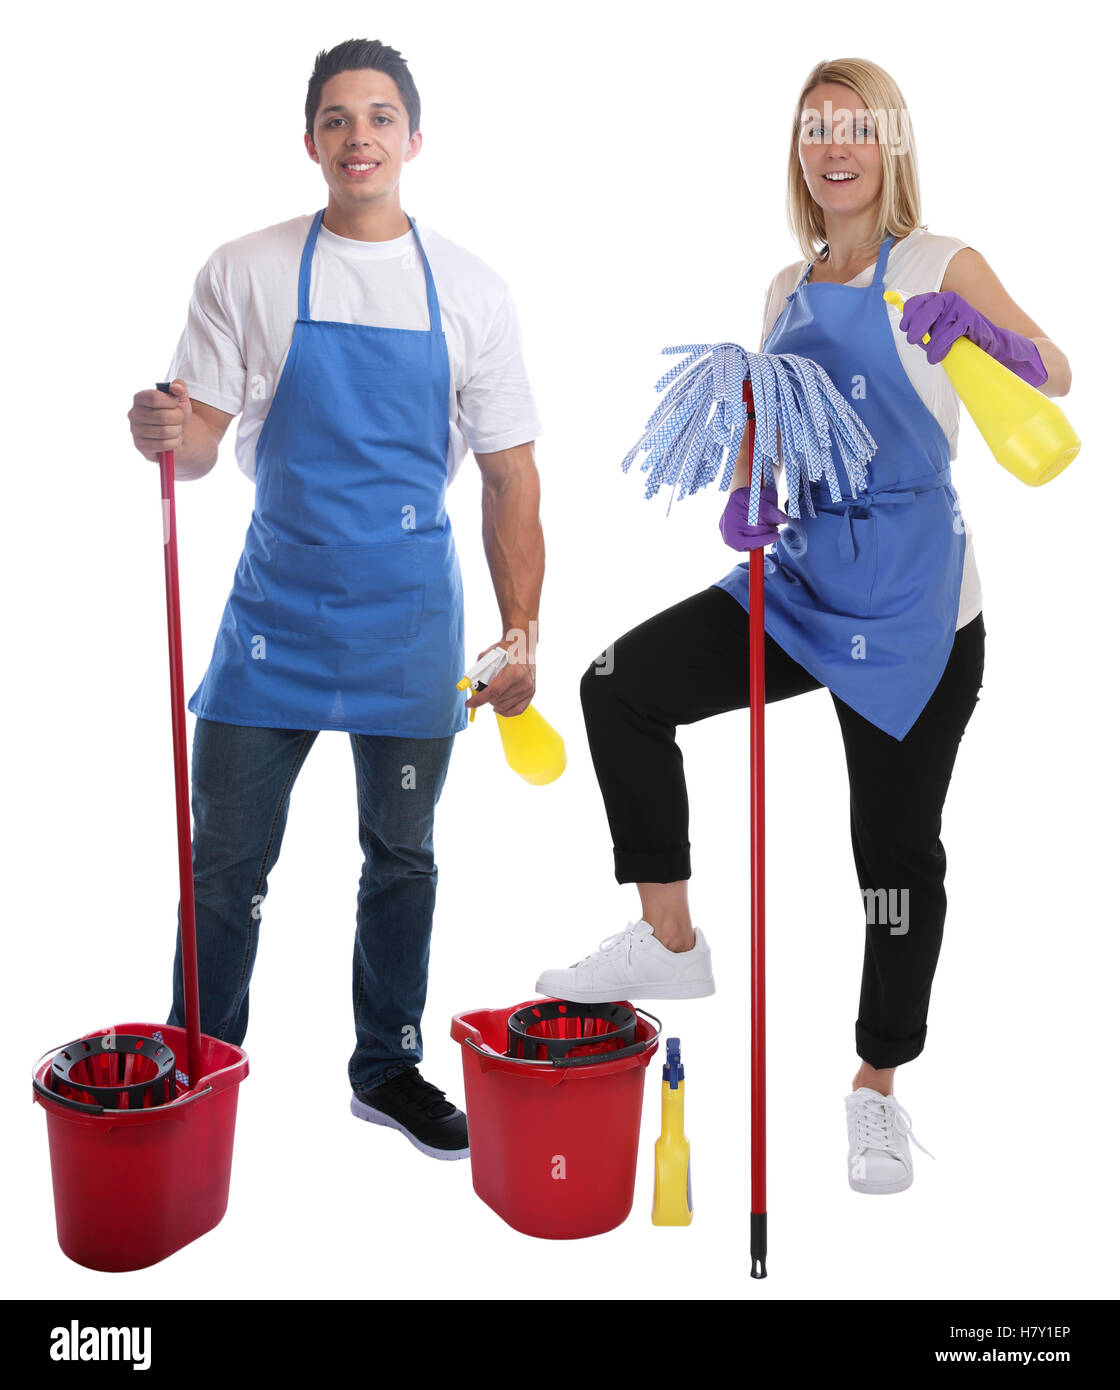 People Cleaning Services : Cleaning lady person service cleaner woman man job